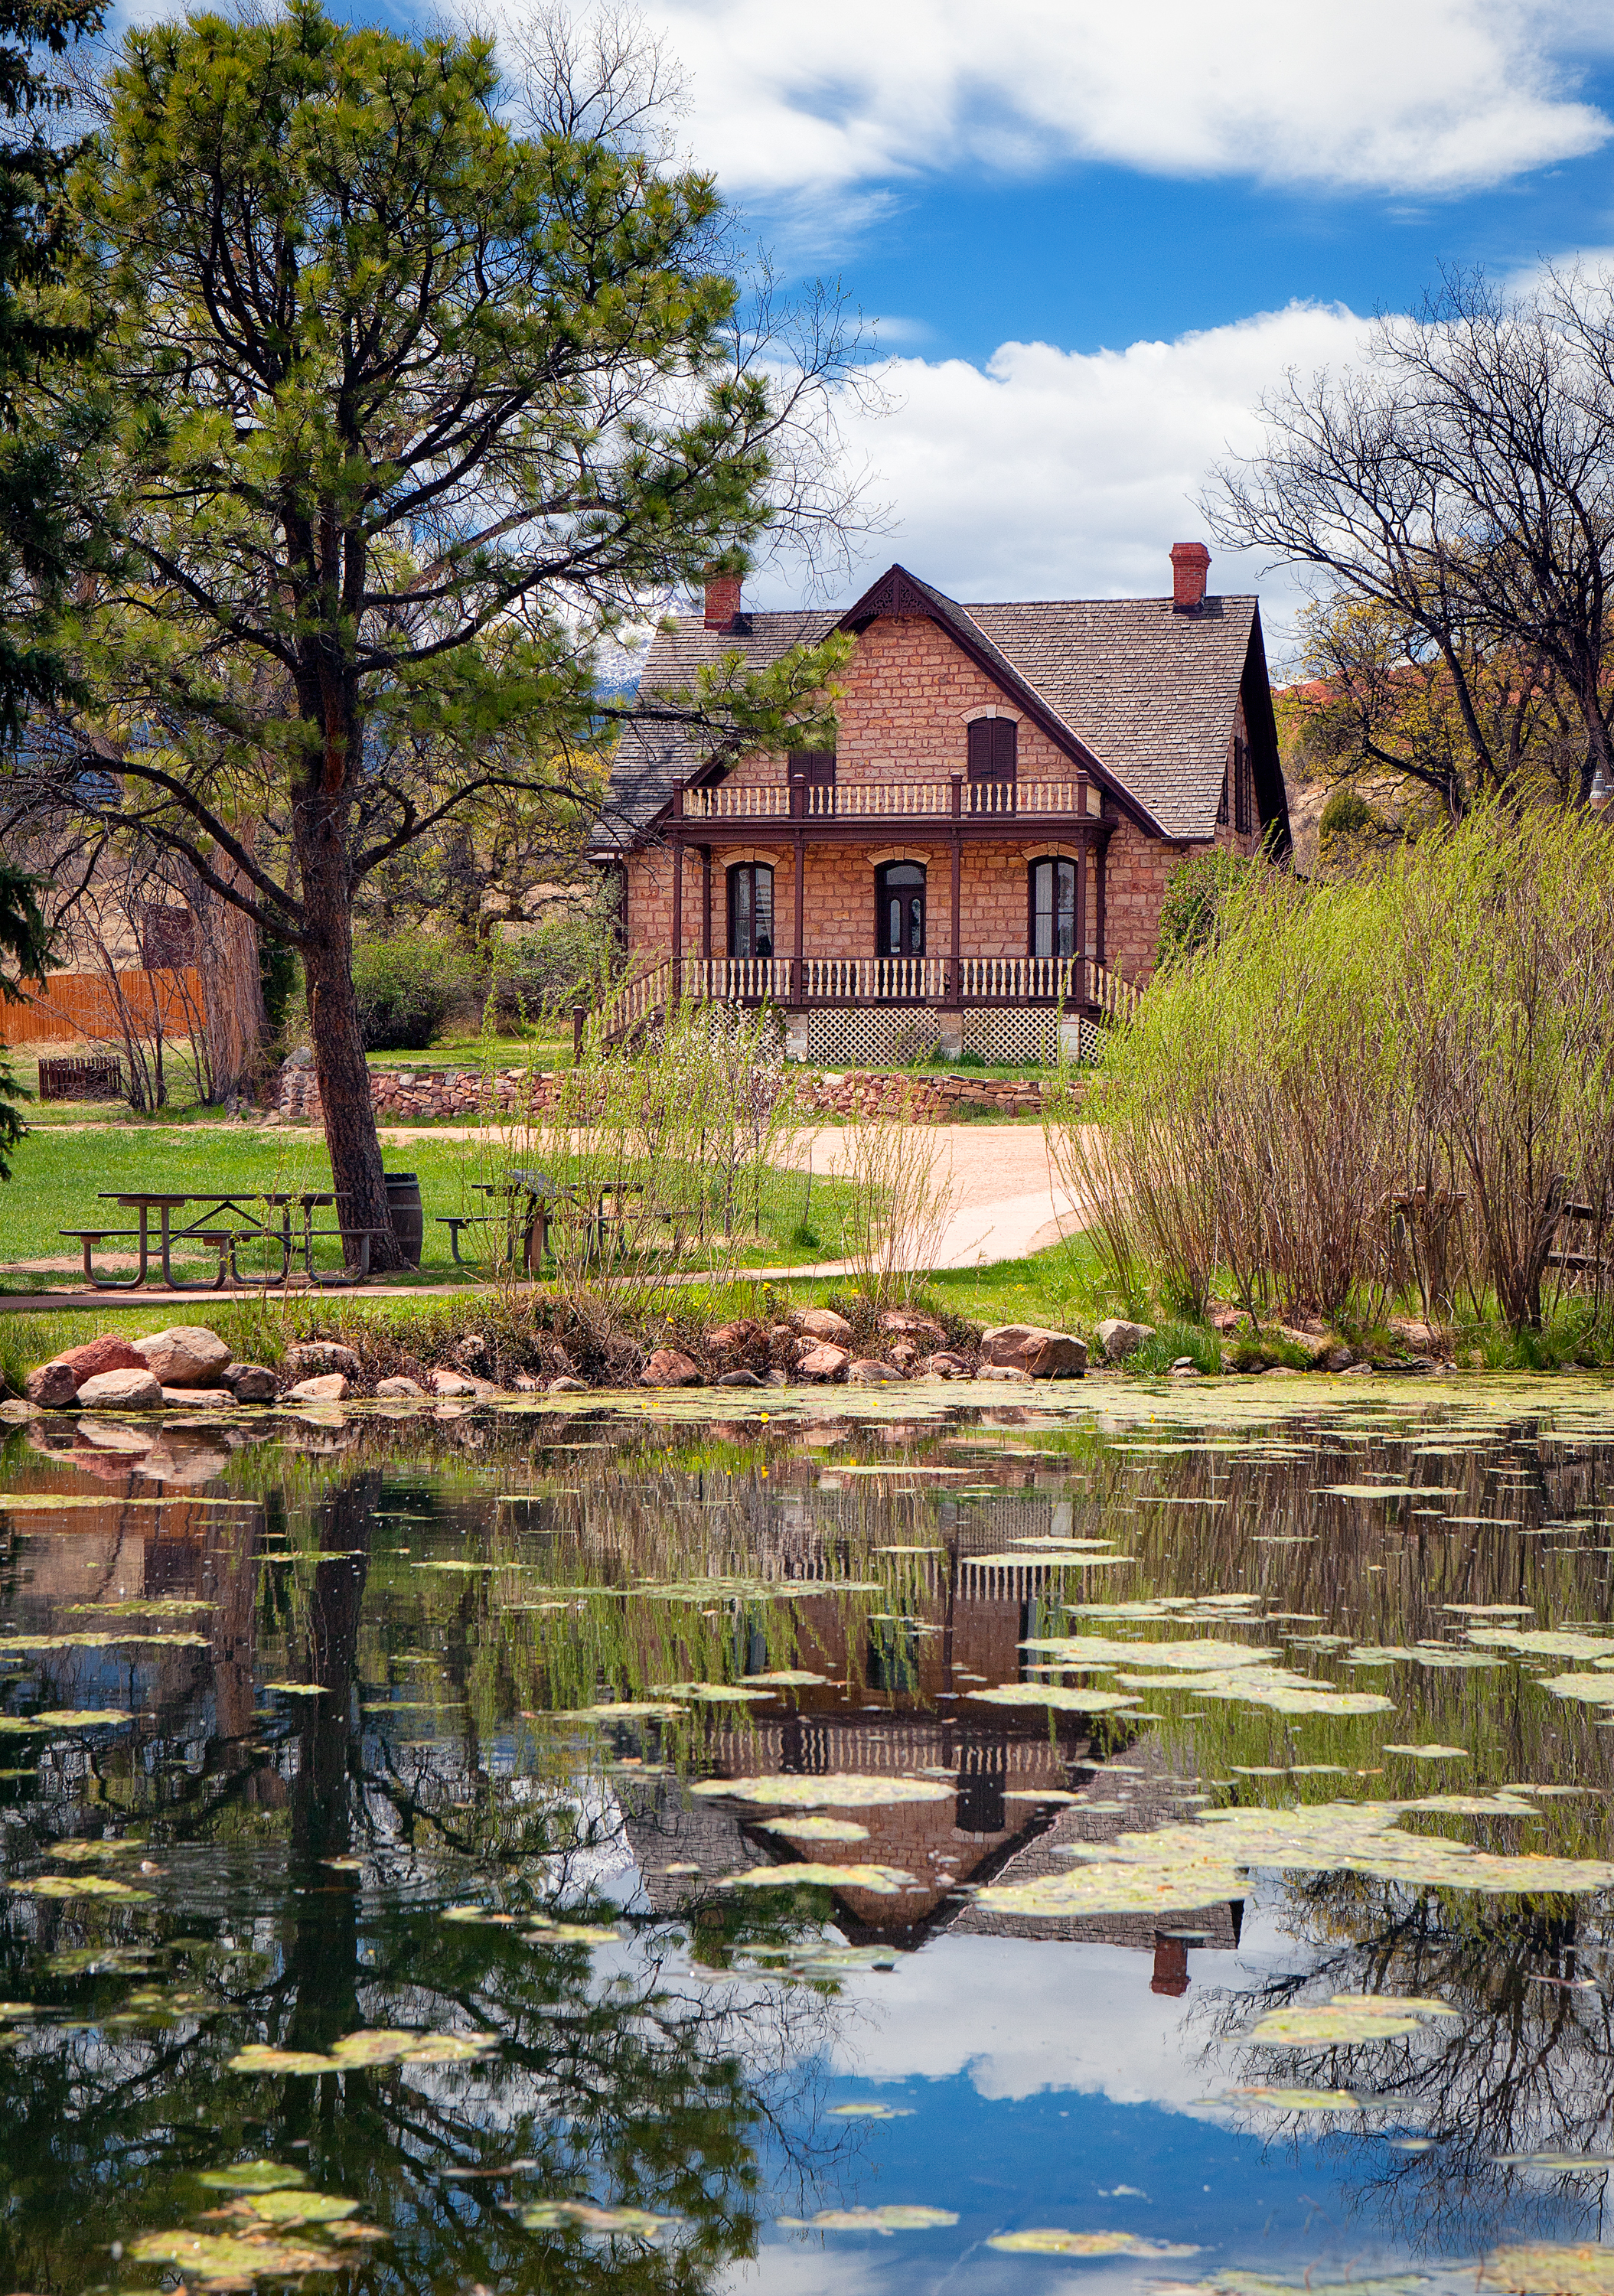 Rock Ledge Ranch Historic Site: a historic home sits behind a pond reflecting the trees and sky